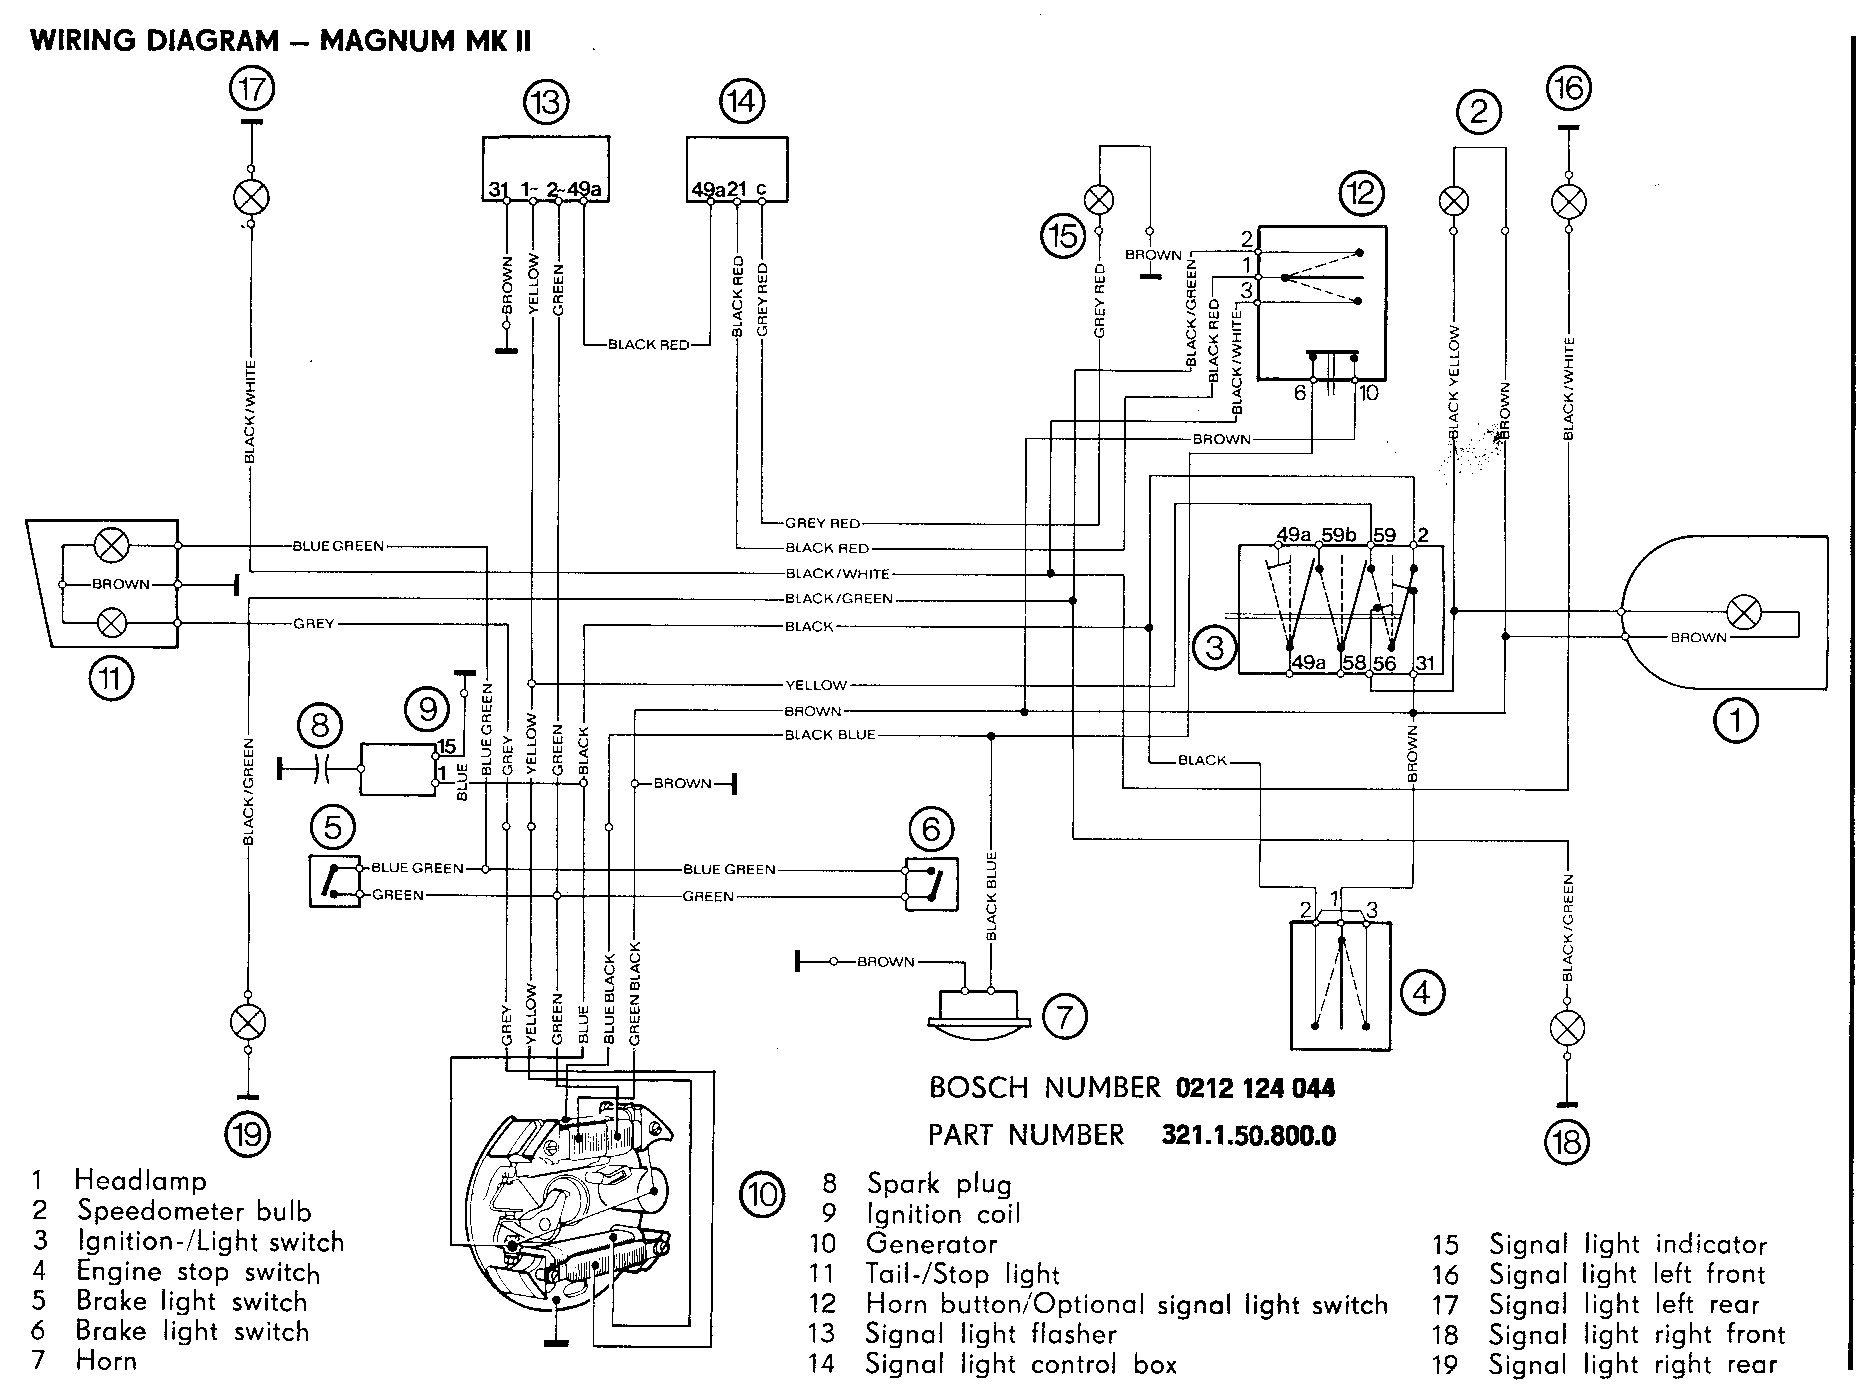 2013 dodge ram fuse box diagram